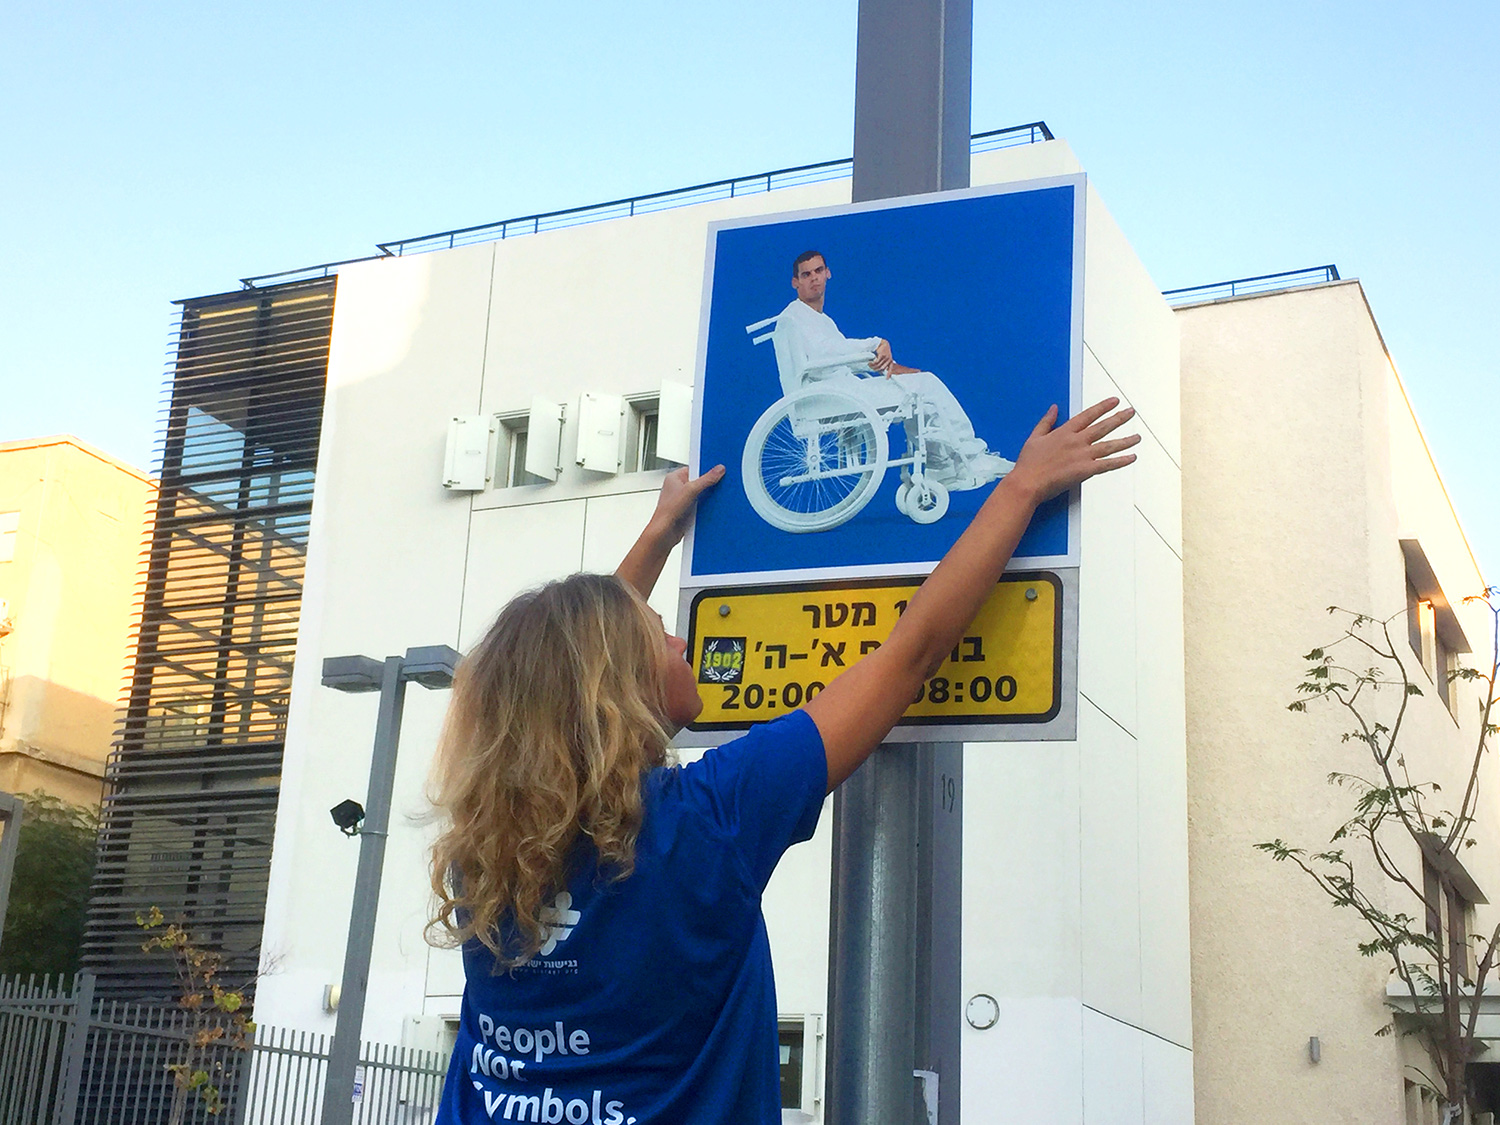 """""""People. Not Symbols"""" 